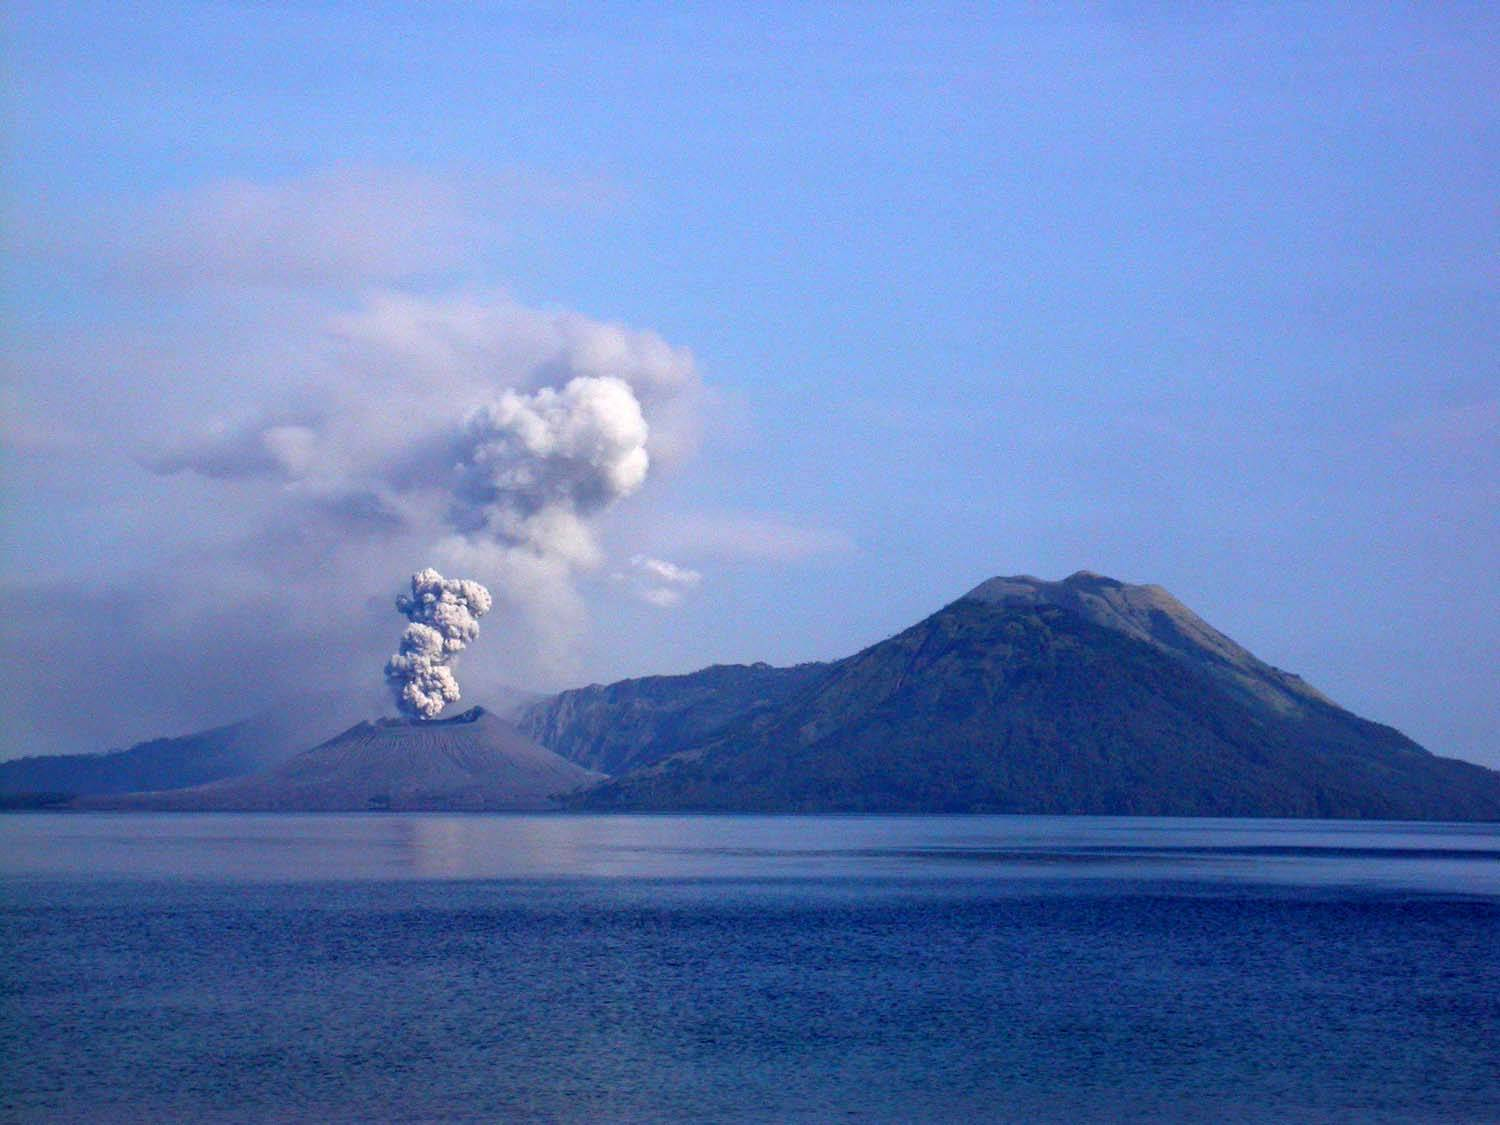 eruption at Rabaul